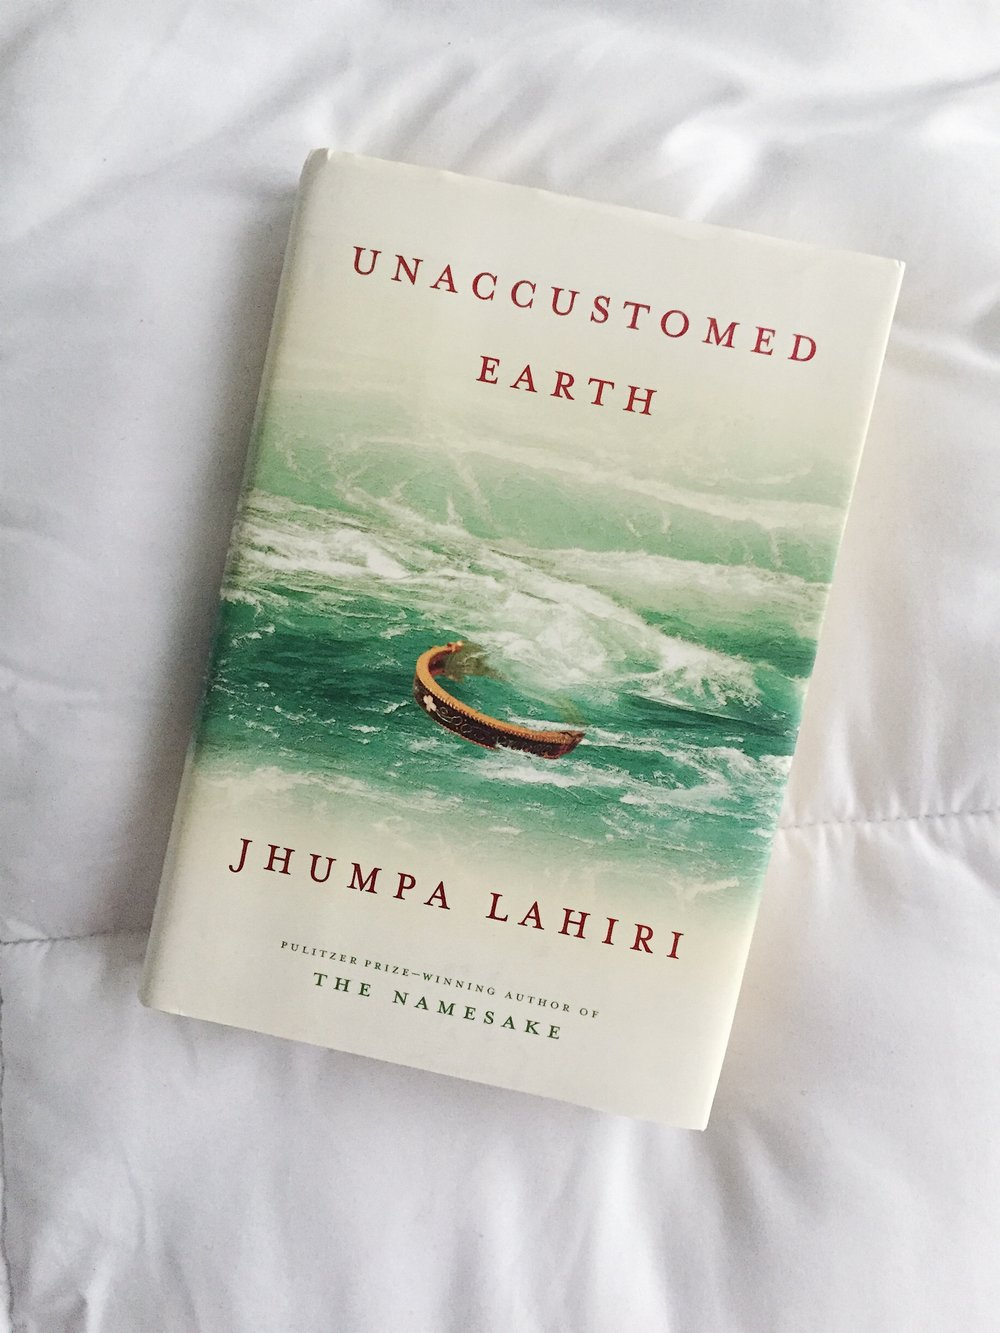 Photo of  Unaccustomed Earth  by  Ify